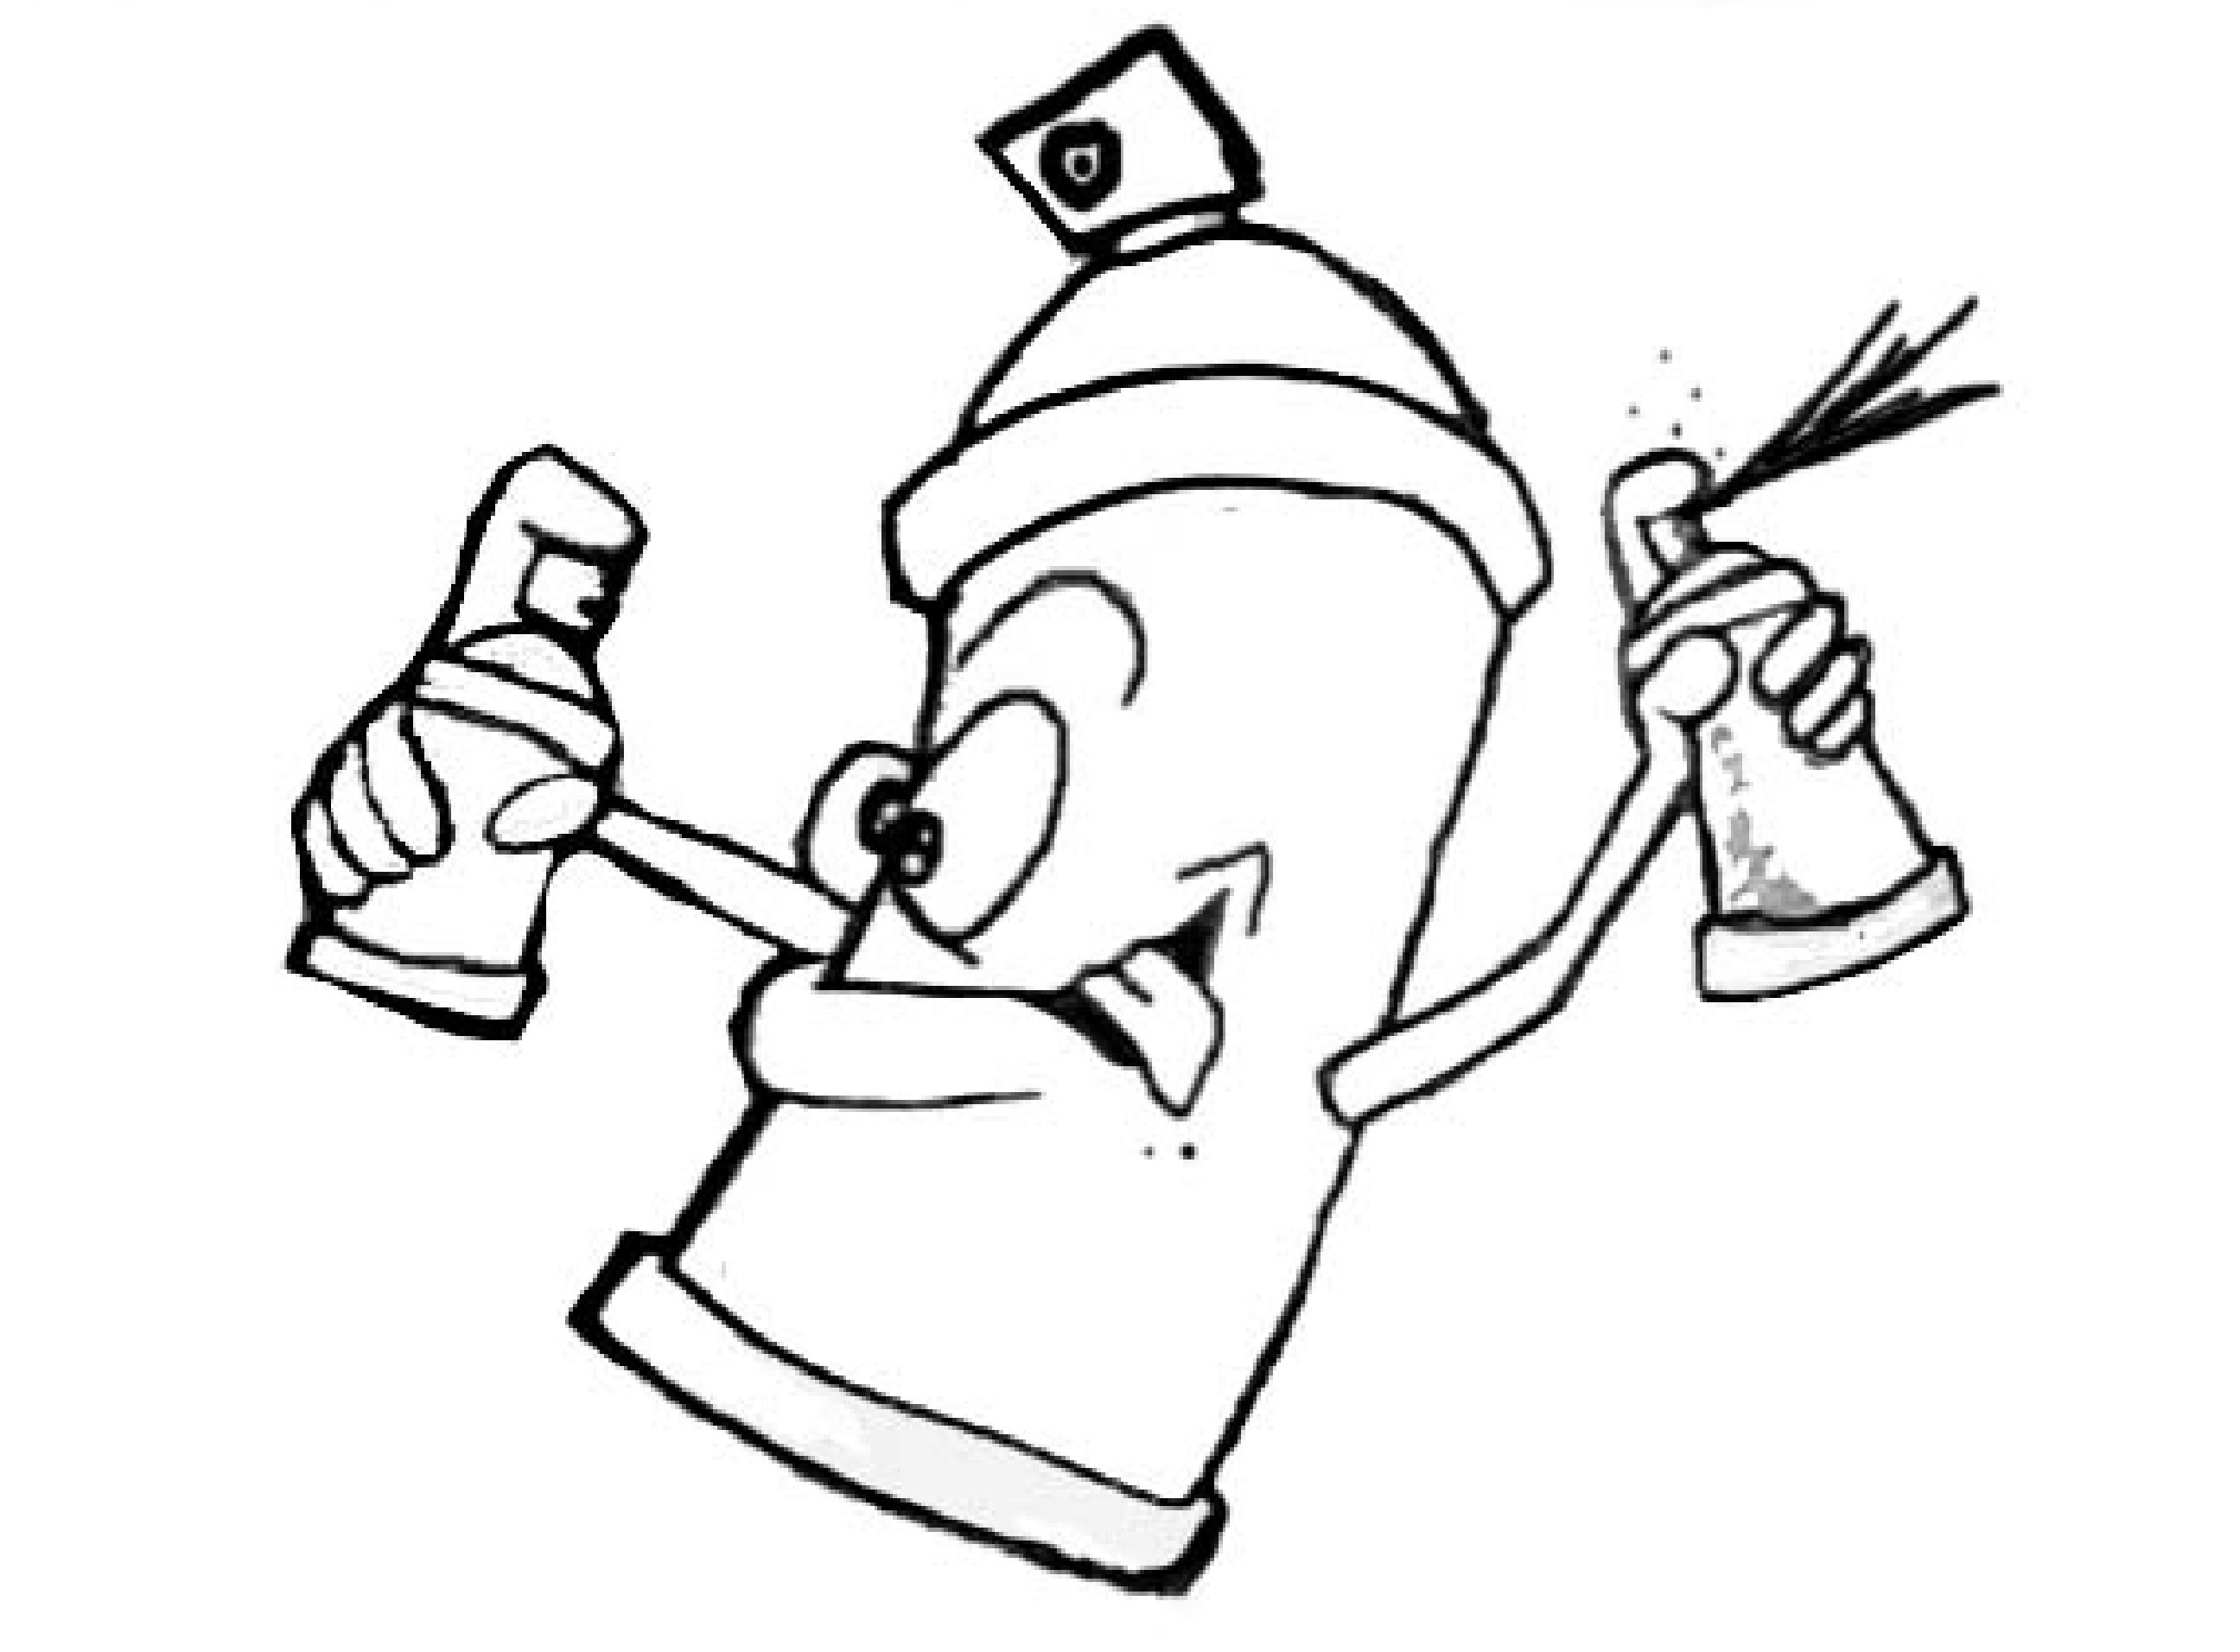 2592x1912 Learn To Draw A Funny Spray Can Holding Two Paint Cans